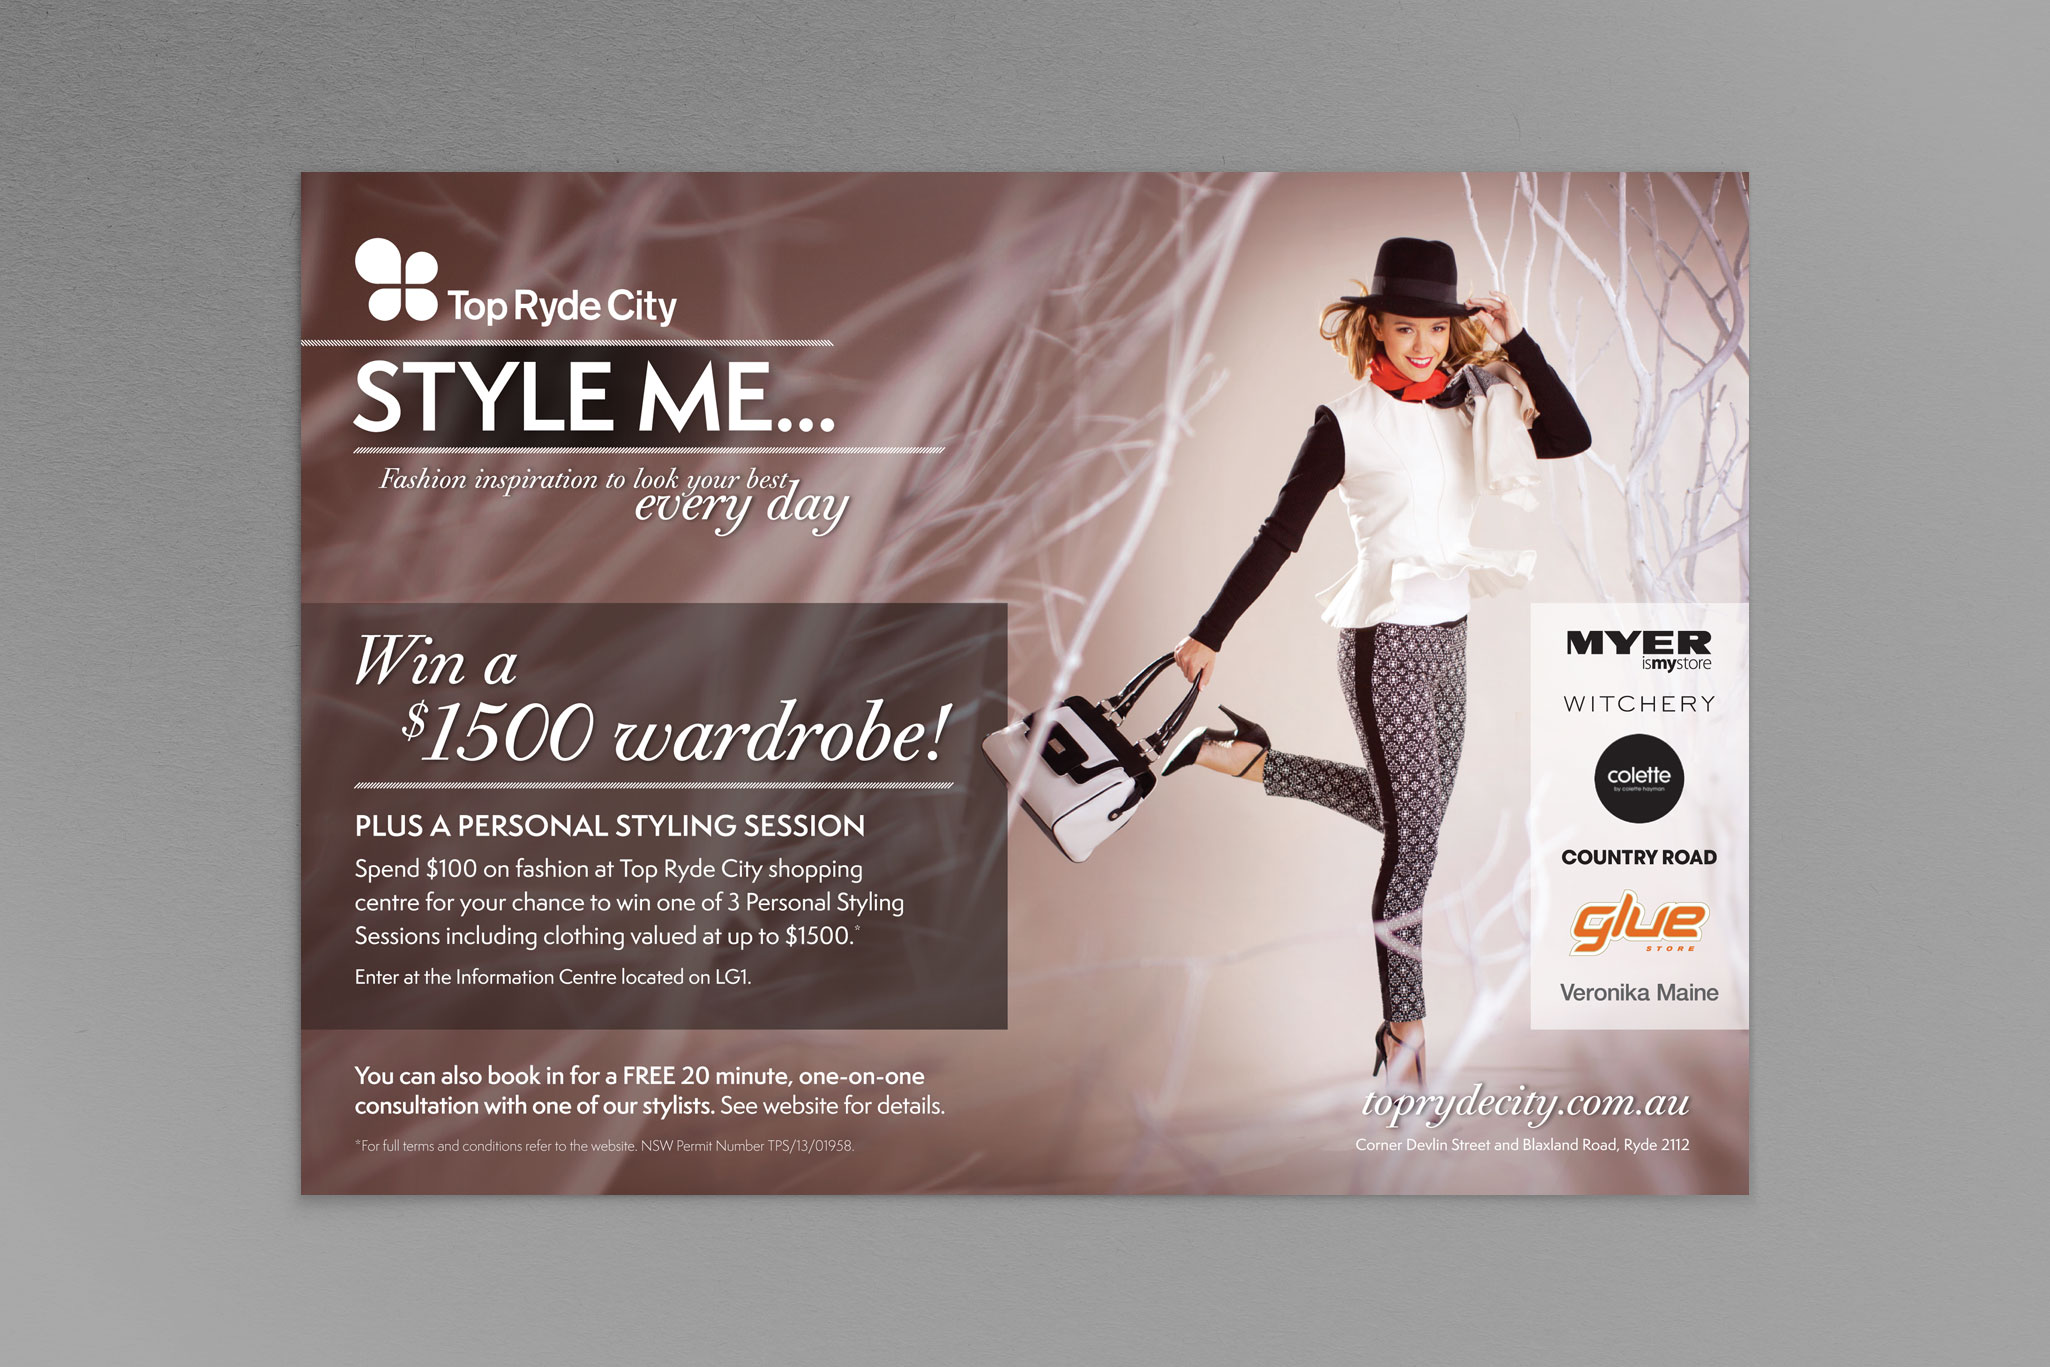 Top_Ryde_City-Winter_fashion_campaign_Landscape_ad_2012-2013.jpg